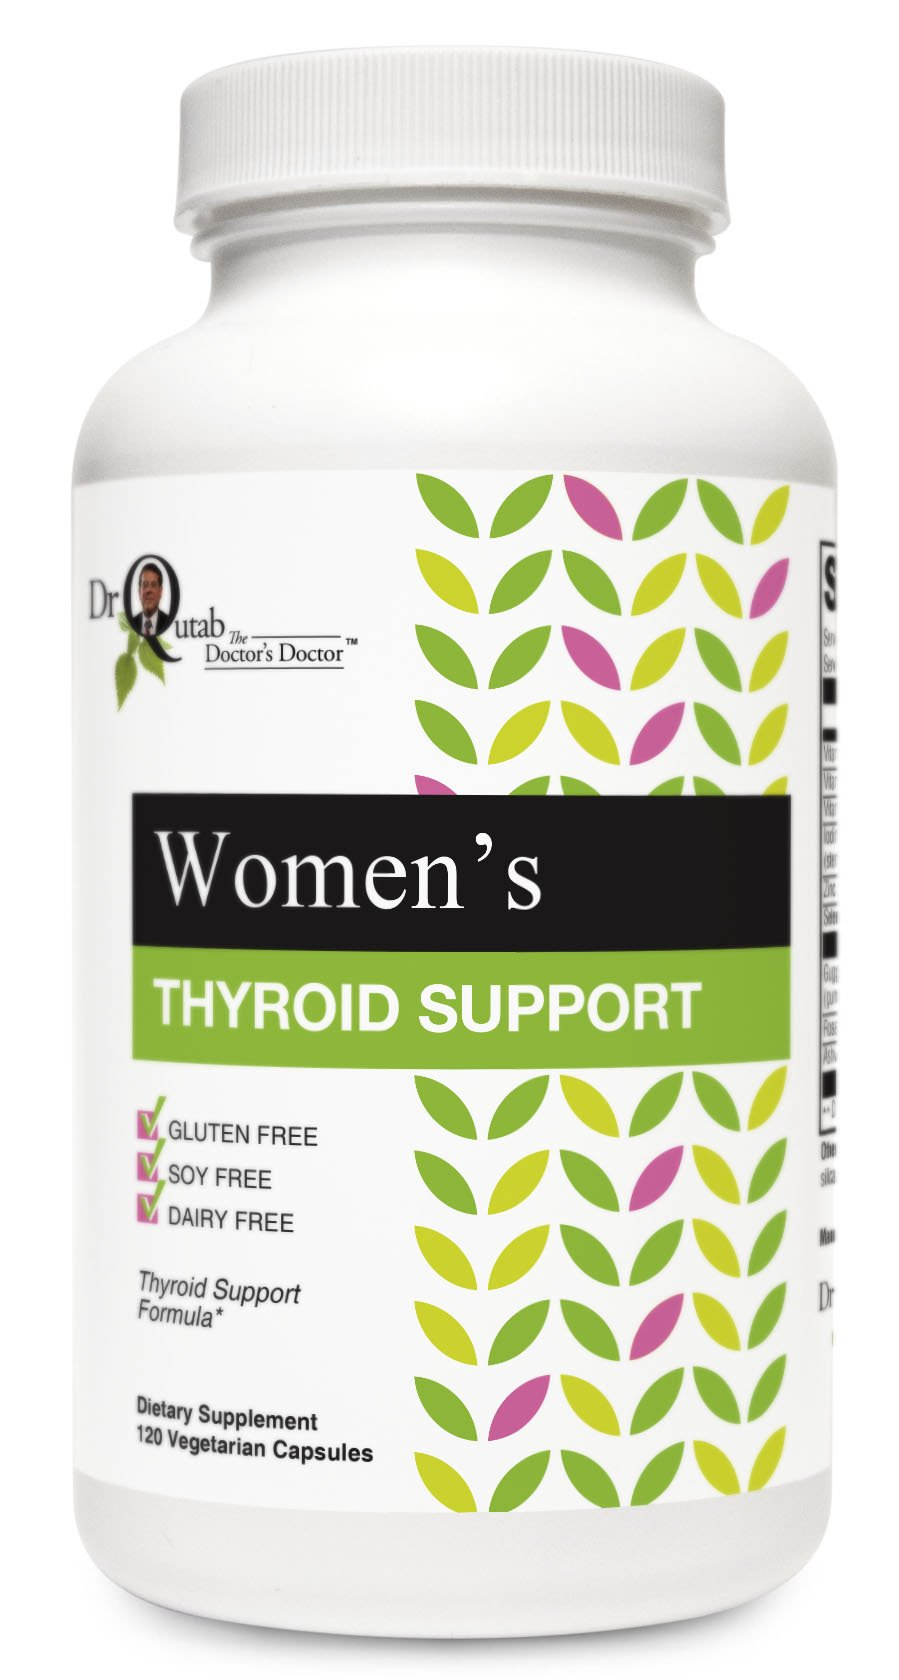 Dr Qutab The Doctor's Doctor, Women's Thyroid Support, Thyroid Support Formula